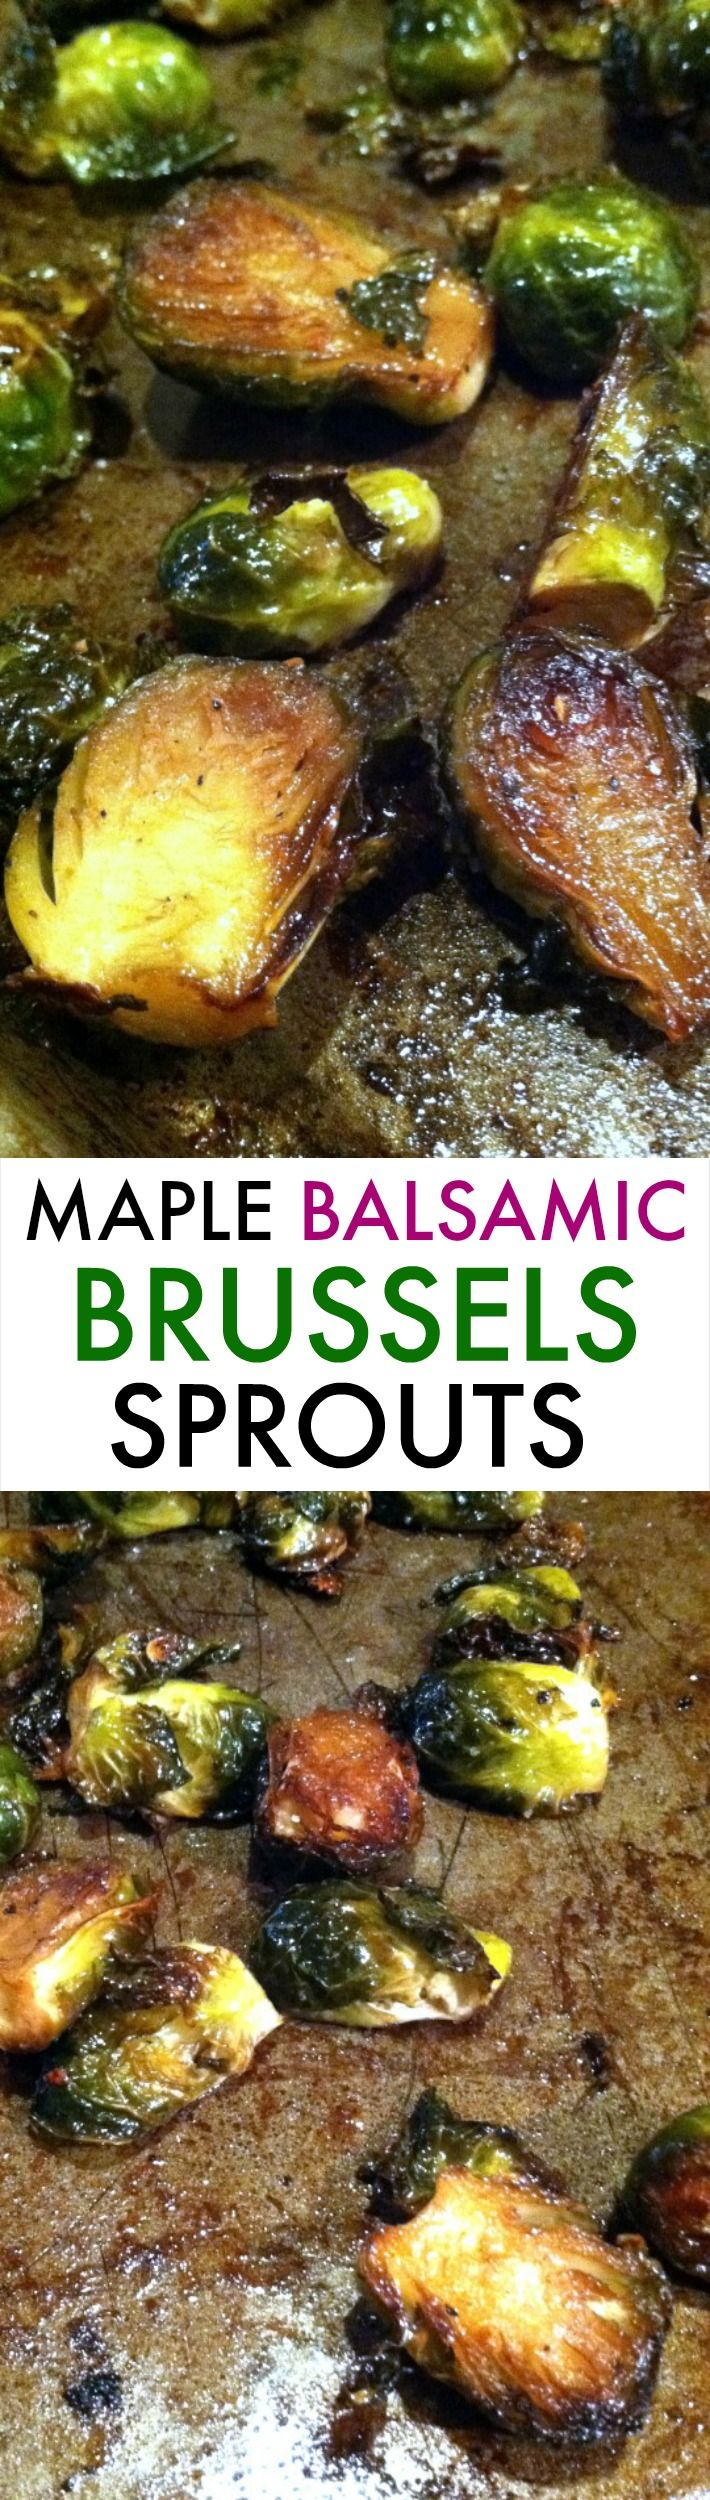 These Maple Balsamic Brussels Sprouts are the perfect holiday side dish! Sweet, salty, caramelized perfection.